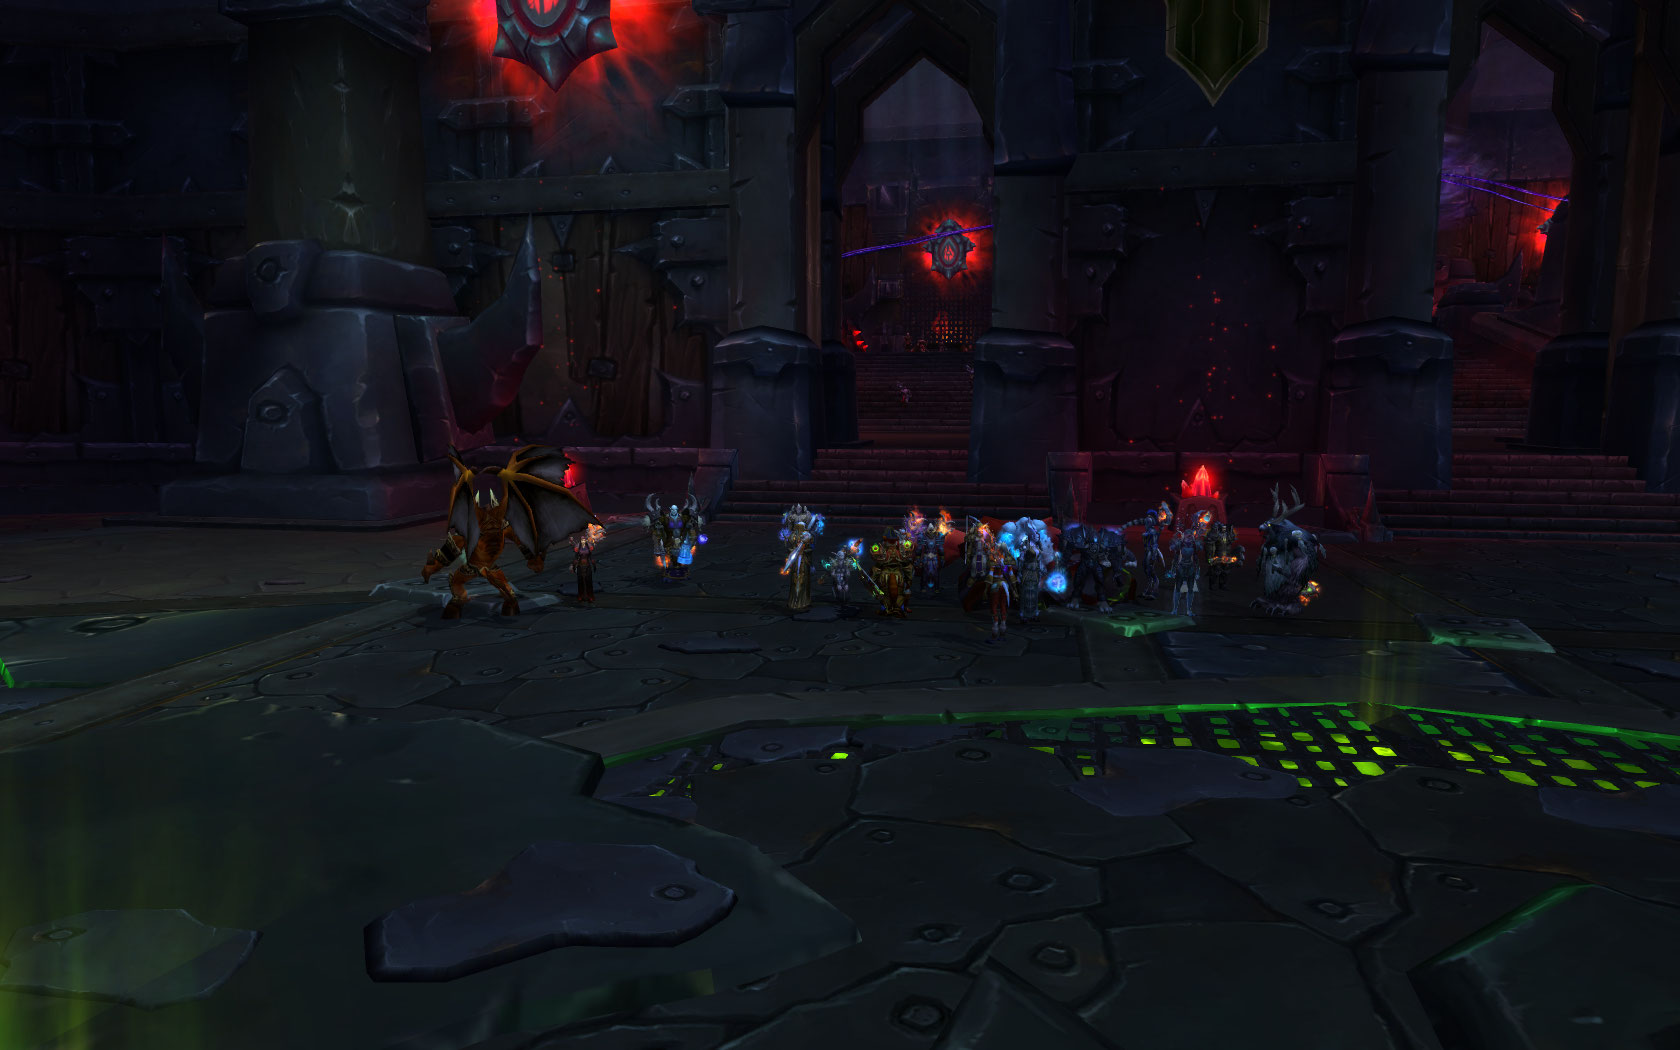 Socrethar the Eternal Lost his battle with team Ice!